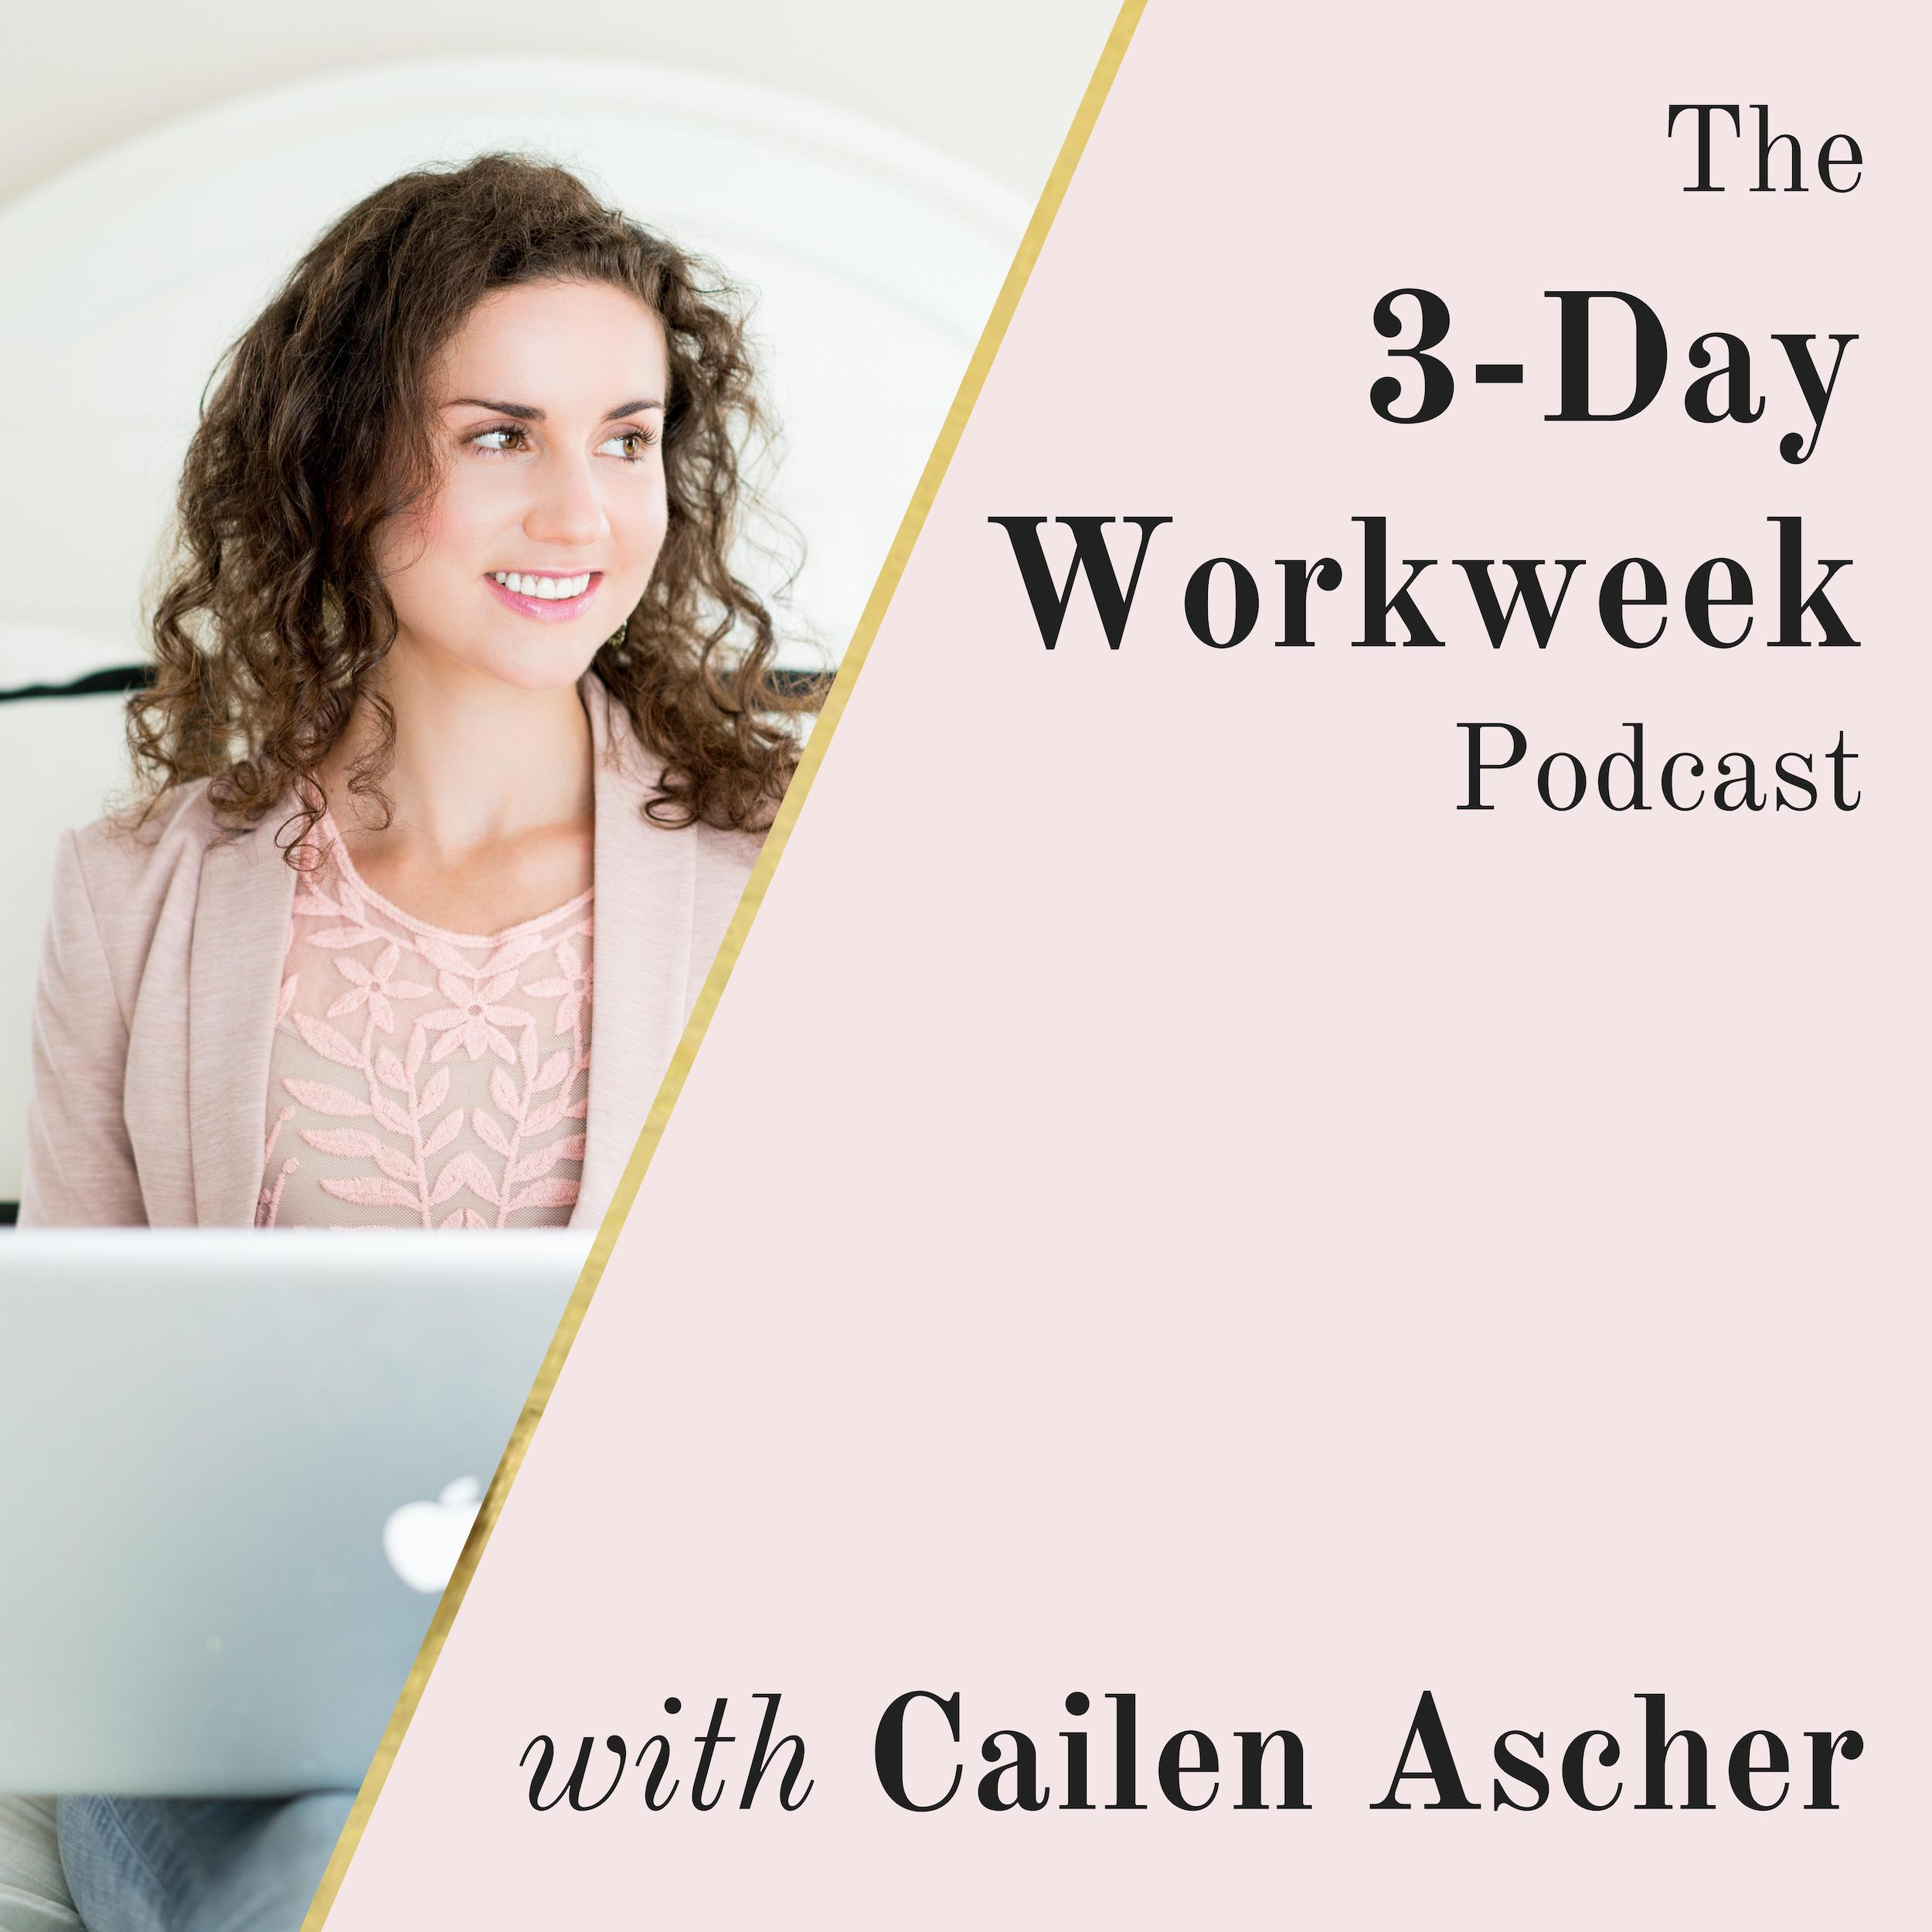 The 3-Day Workweek Podcast show art